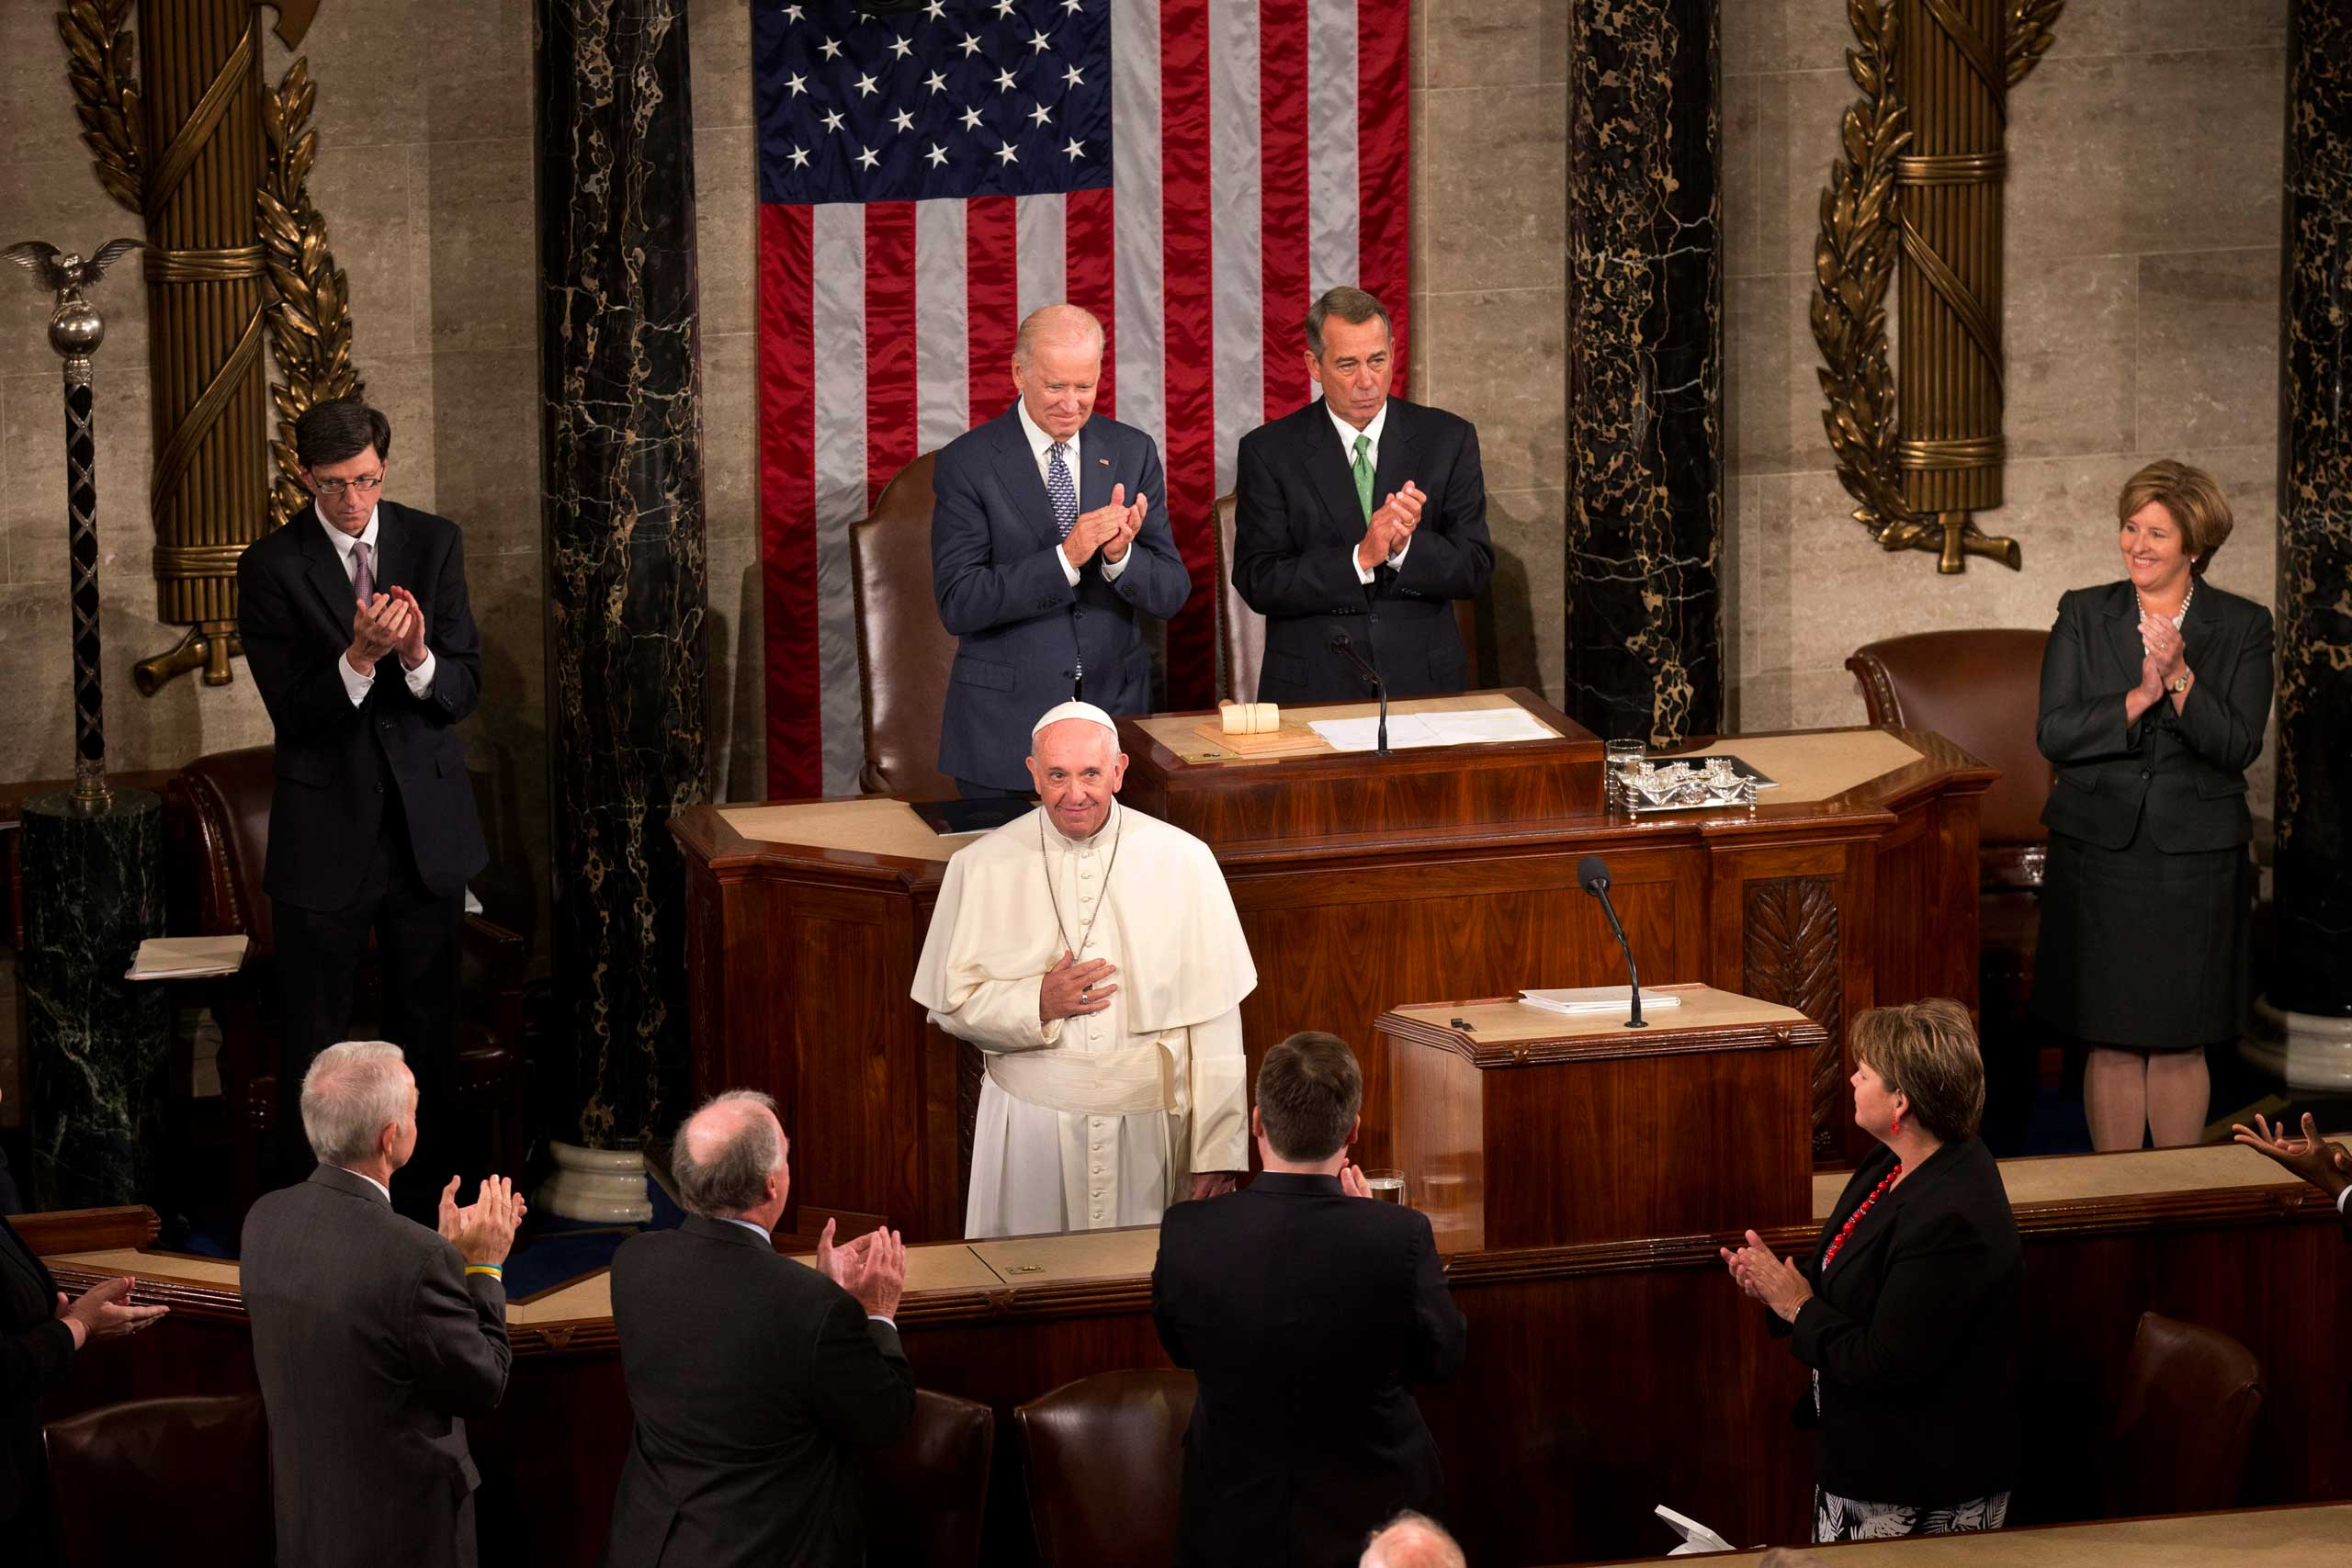 Pope Francis listens to applause before addressing a joint meeting of Congress on Capitol Hill in Washington, on Sept. 24, 2015,